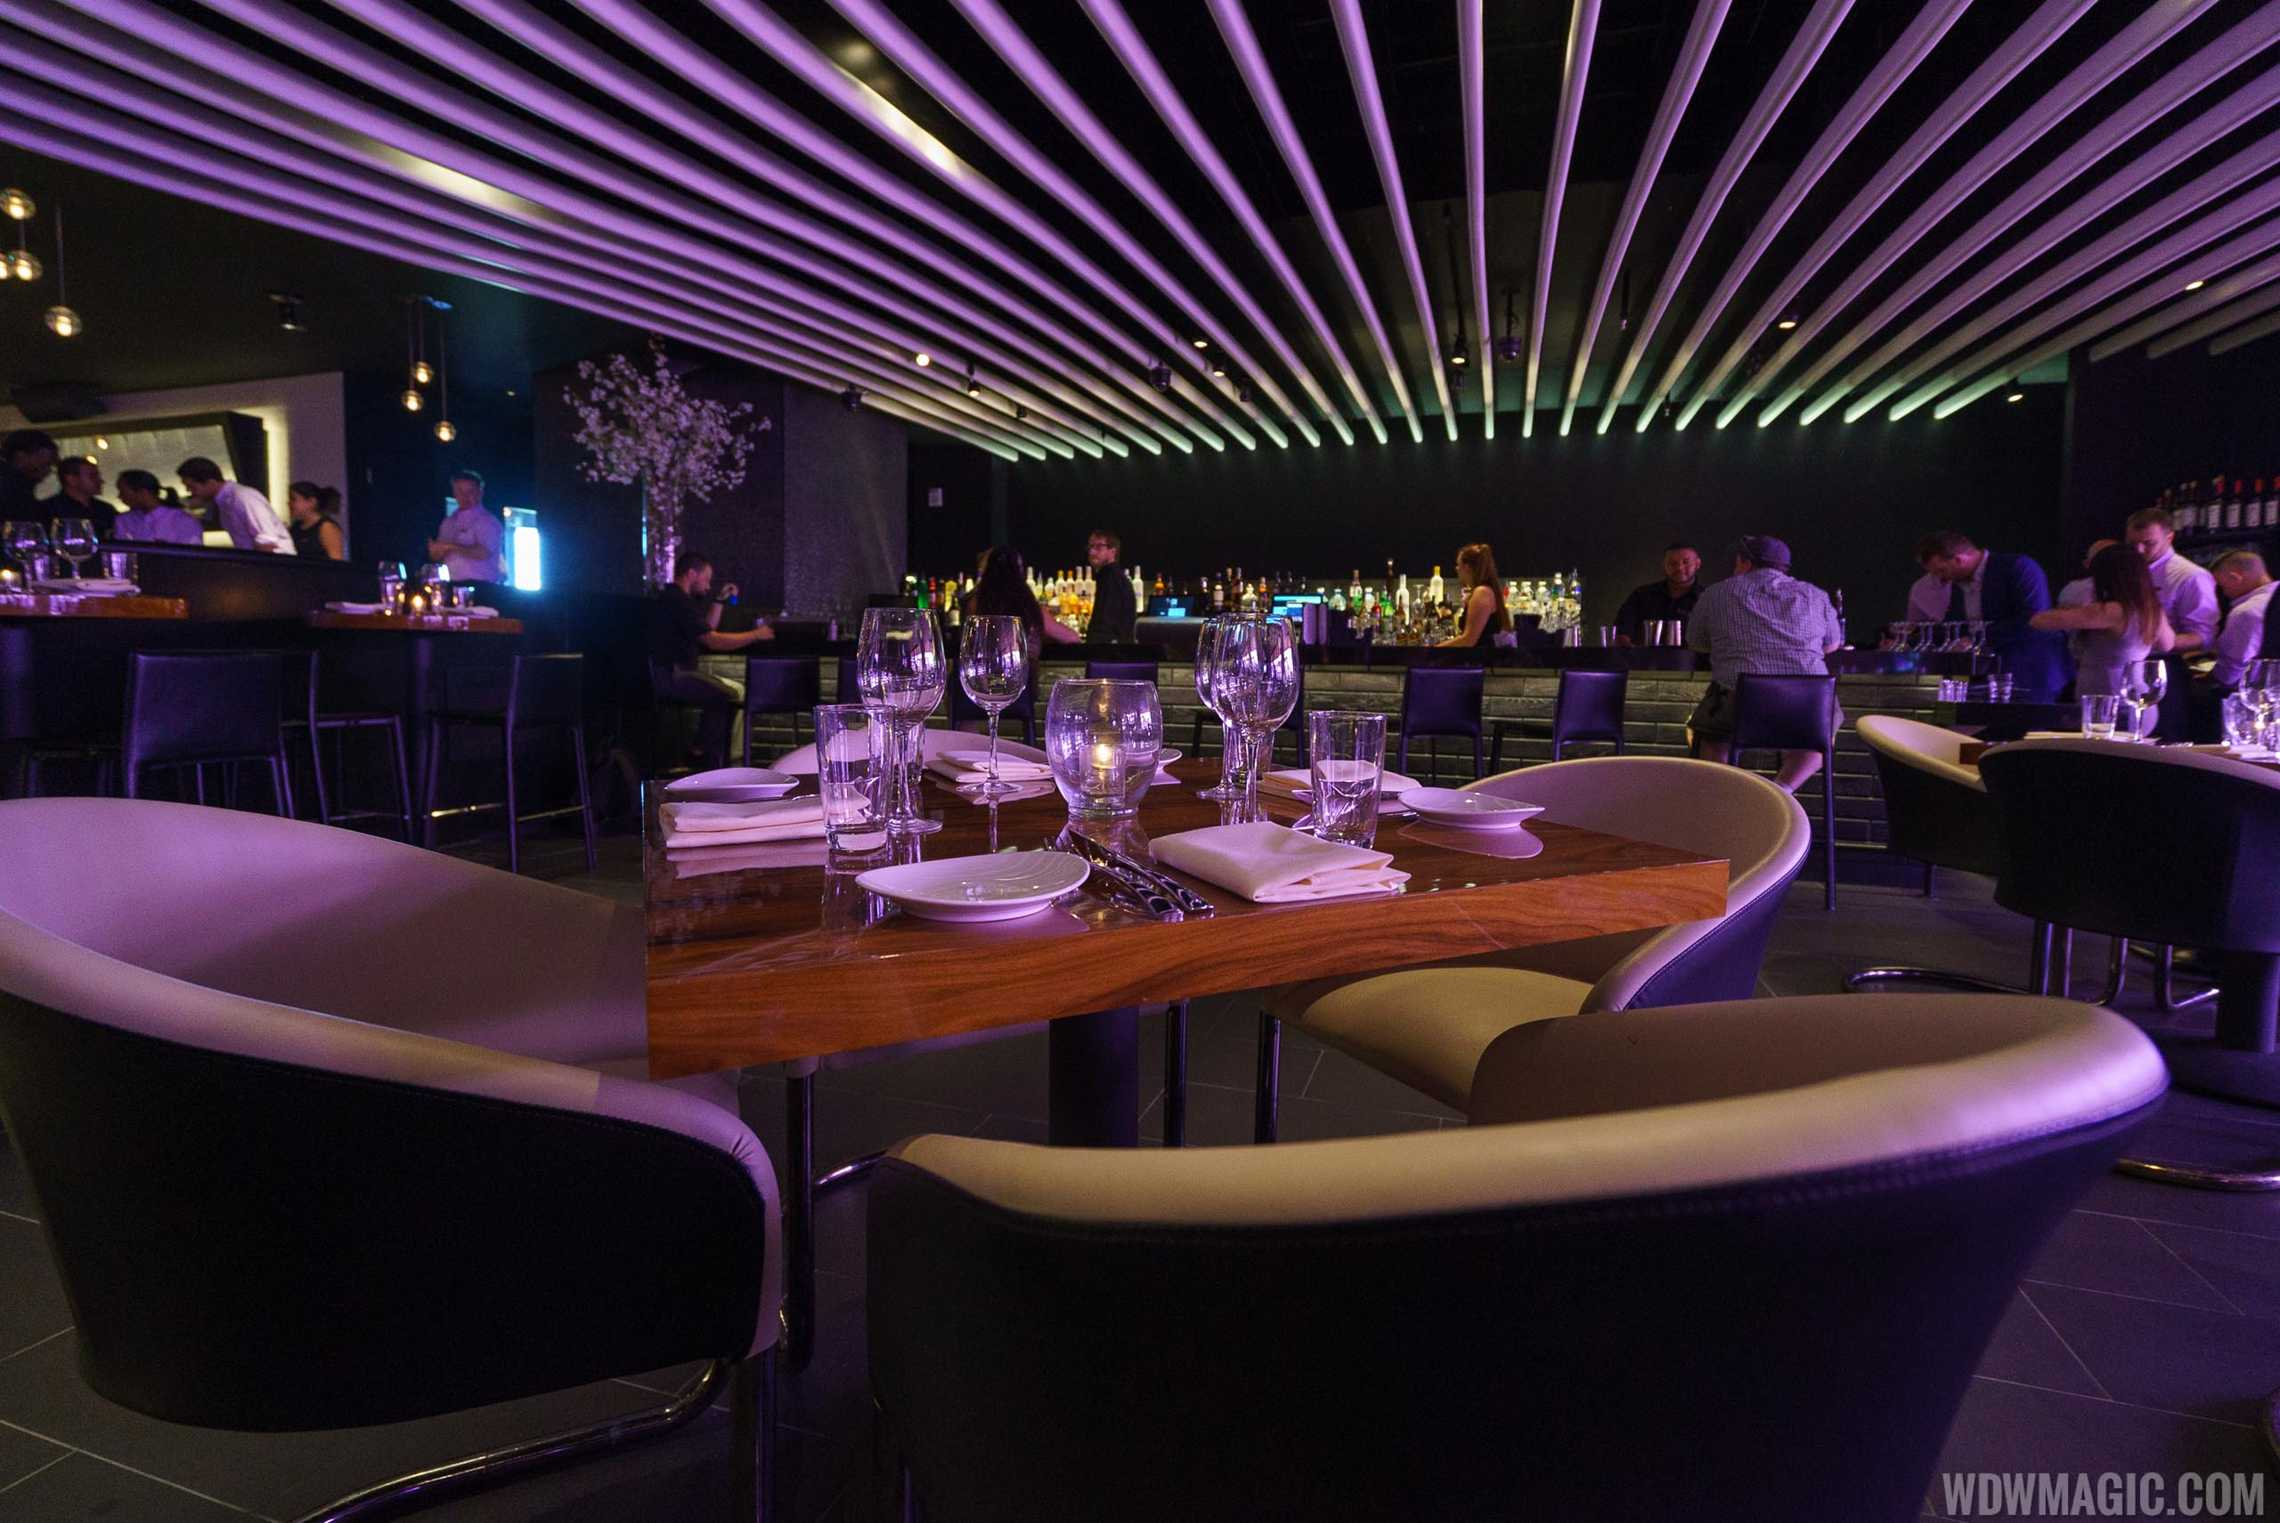 STK Orlando - Lower level dining room and bar area